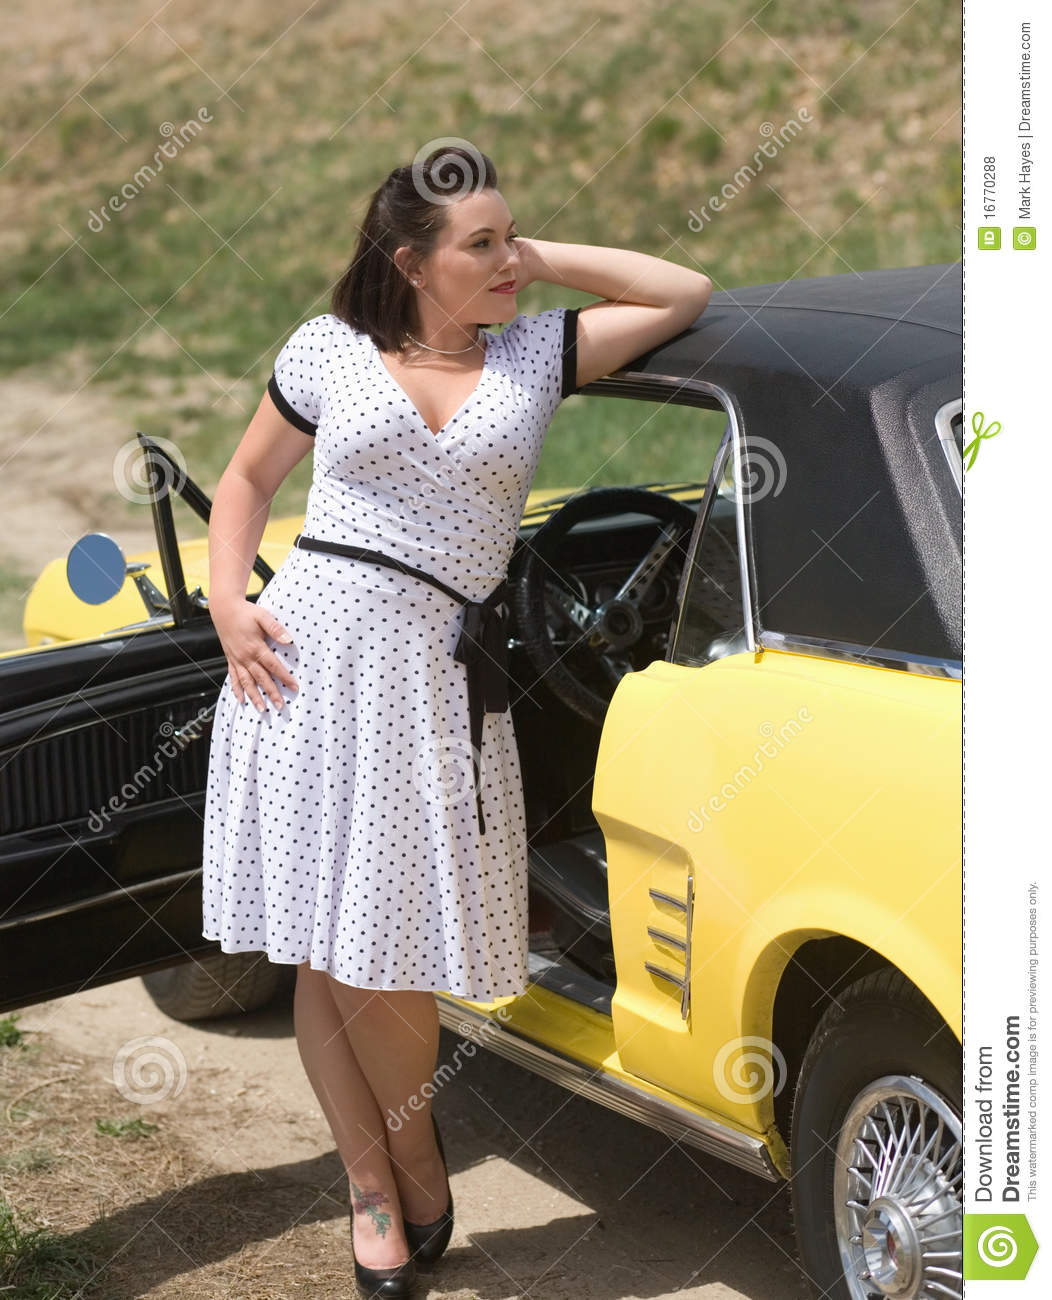 3d Mustang Wallpaper Girl And Classic Car Royalty Free Stock Photos Image